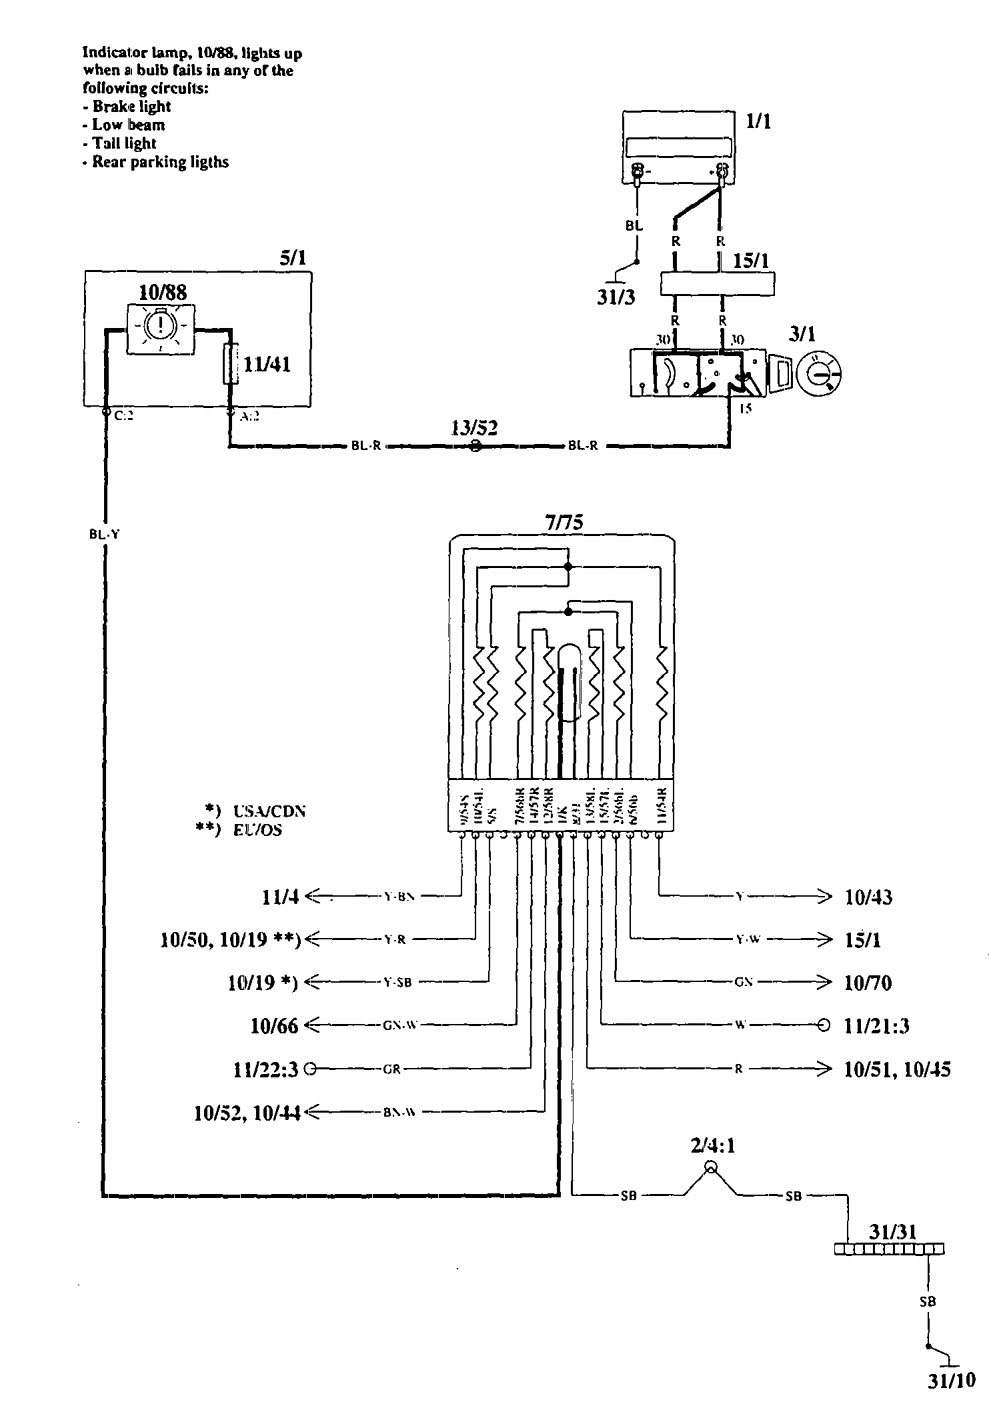 1995 Volvo 940 Wiring Diagram Auto Electrical 960 Related With